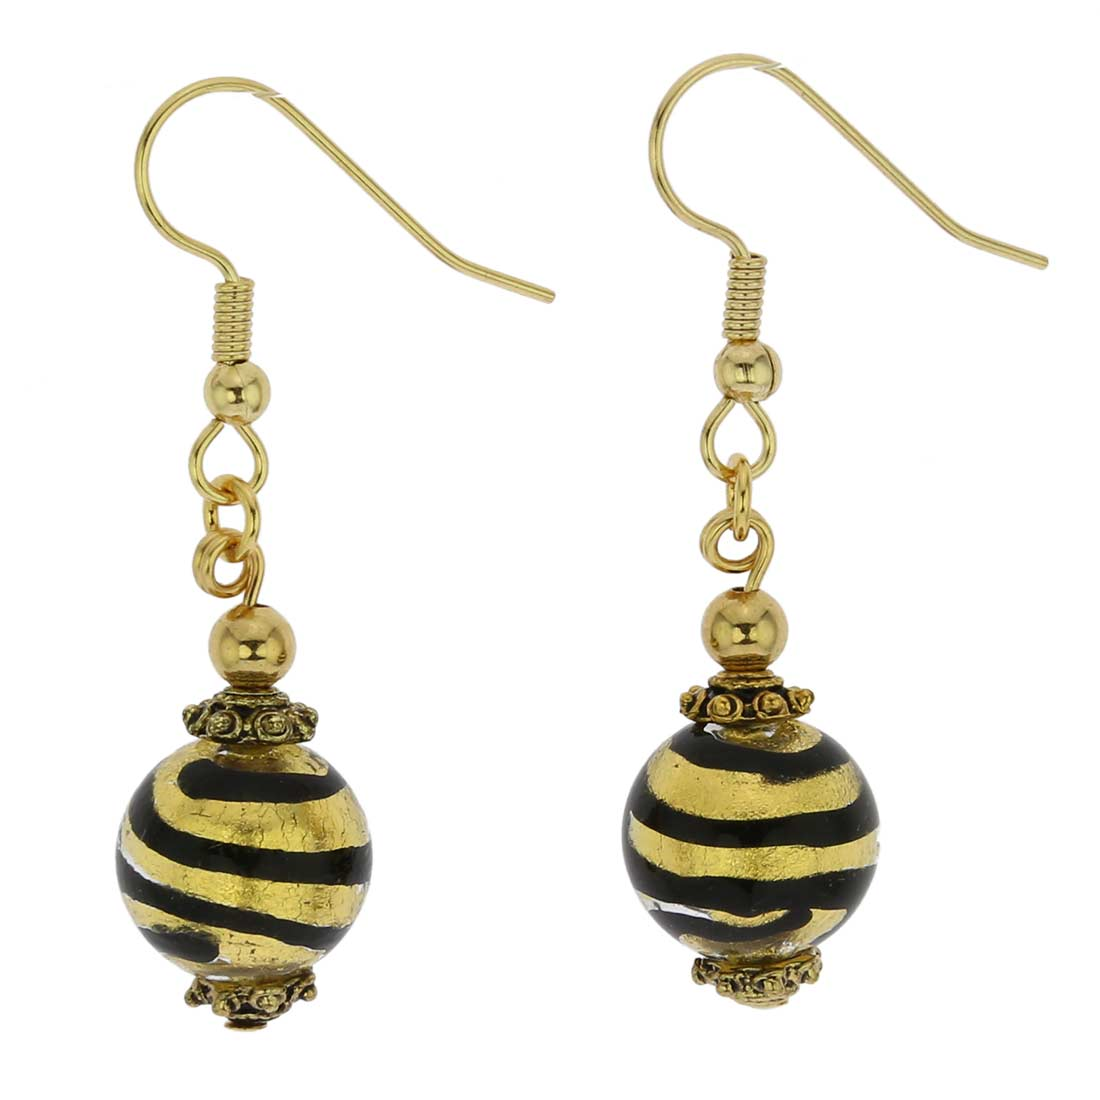 Antico Tesoro Balls Earrings - Striped Gold